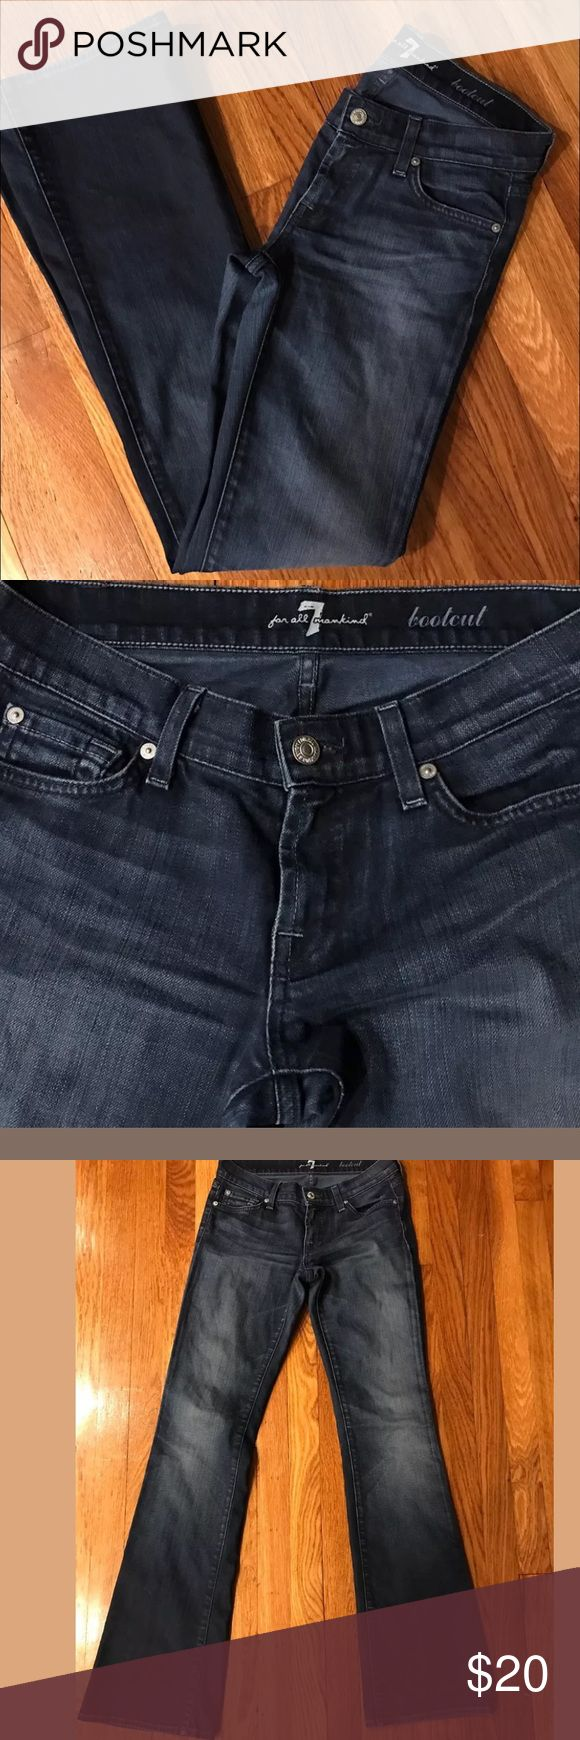 """7 For All Mankind Bootcut Dark Dakota Jeans 7 For All Mankind Bootcut in Dark Dakota Women's Jeans SZ 25  Excellent condition.   Measurements are approximate:  Waist - 13.5"""" Inseam - 33.5"""" Leg opening at cuff - 8"""" Outseam: 41"""" 7 For All Mankind Jeans Boot Cut"""